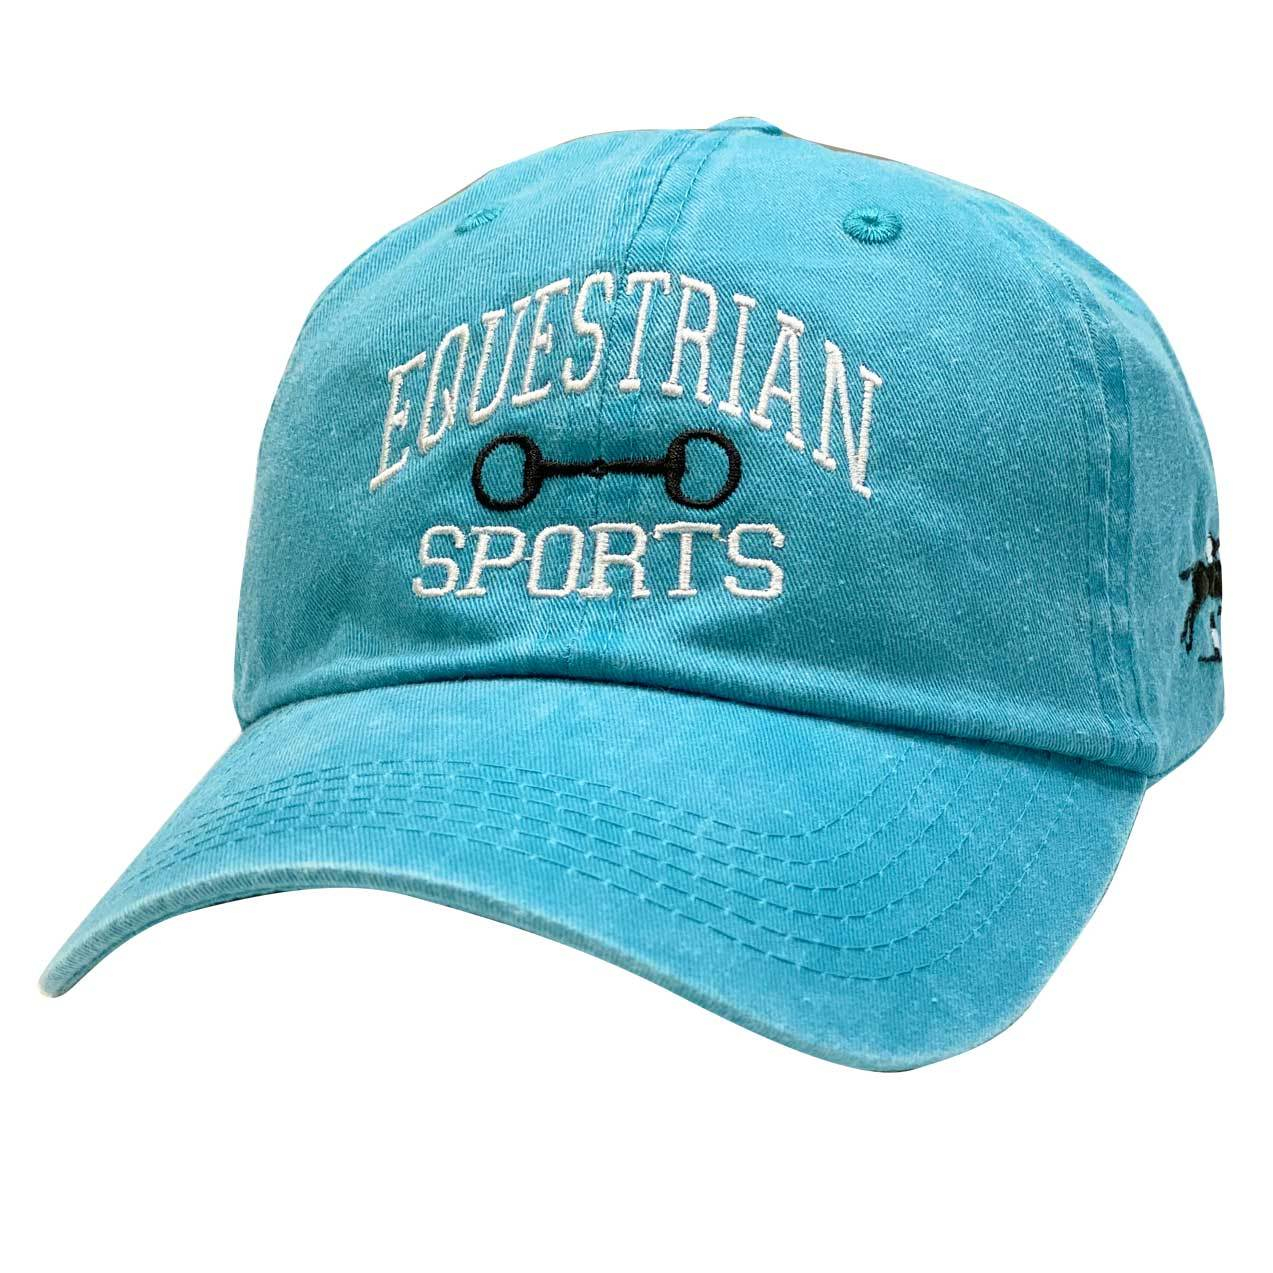 Equestrian Sports with Bit Cap